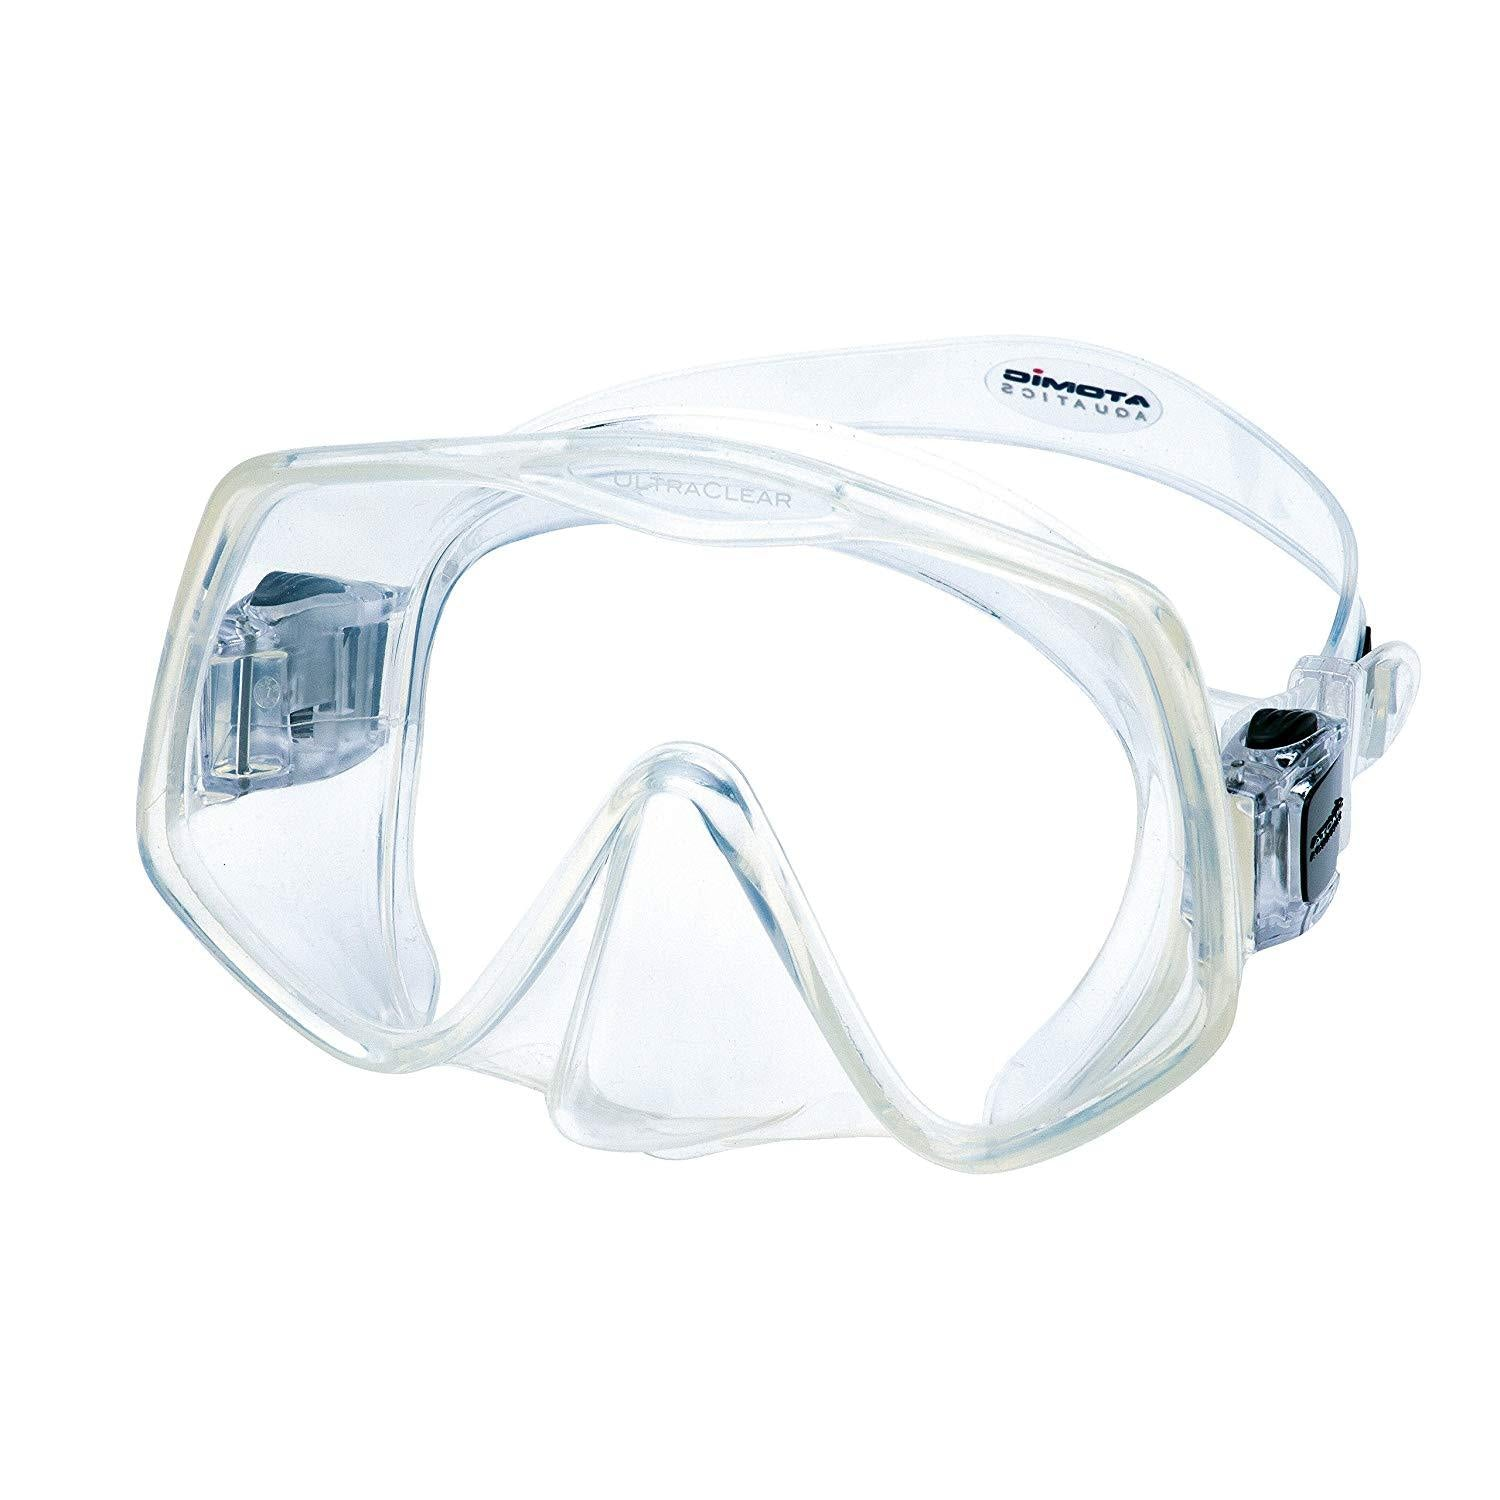 Atomic Aquatics Frameless 2 Mask (Clear, Large Fit)